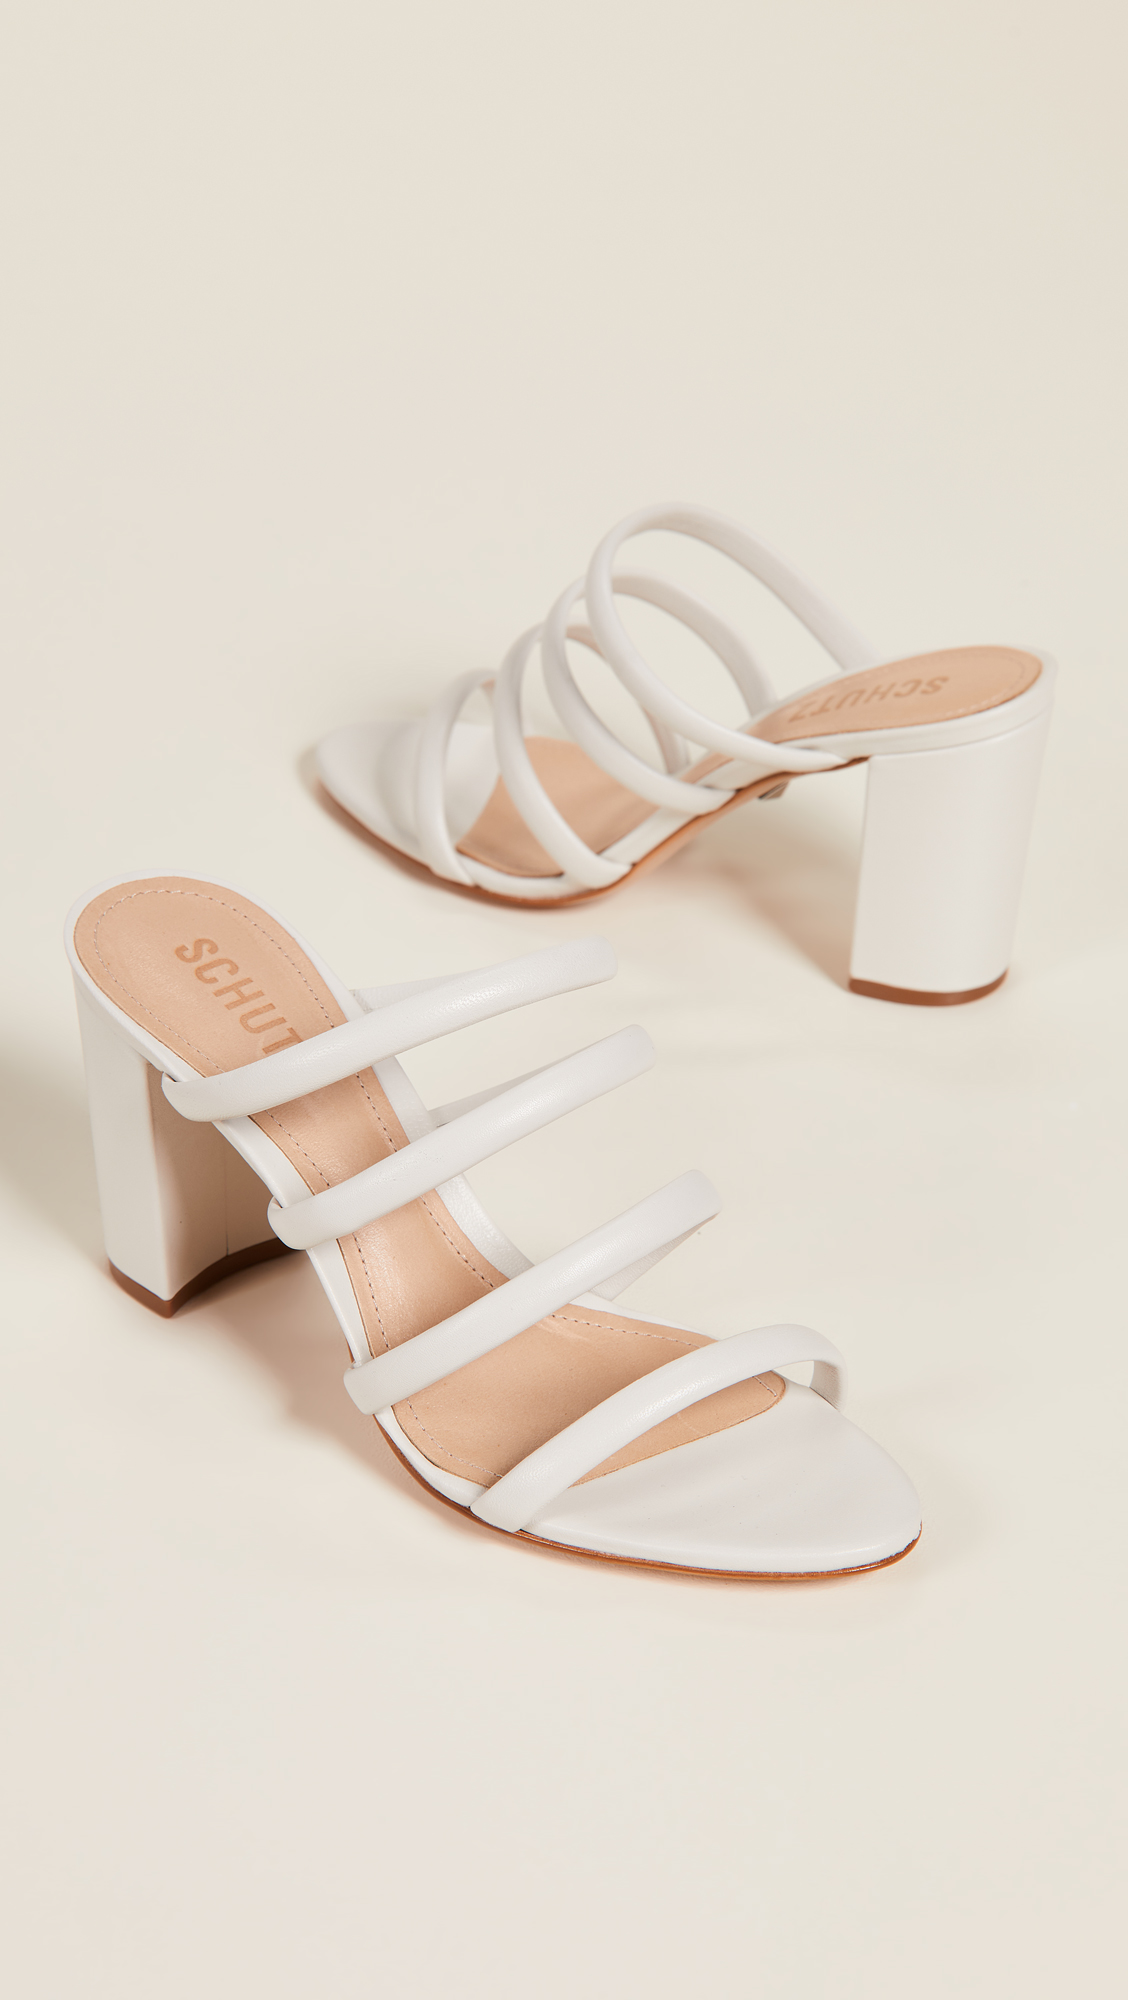 A Strappy Block Heel - My ideal summer sandal in a neutral shade that's easy to slip on! Pair these with your favorite jeans during the day, or slip them on with a dress for a night out!